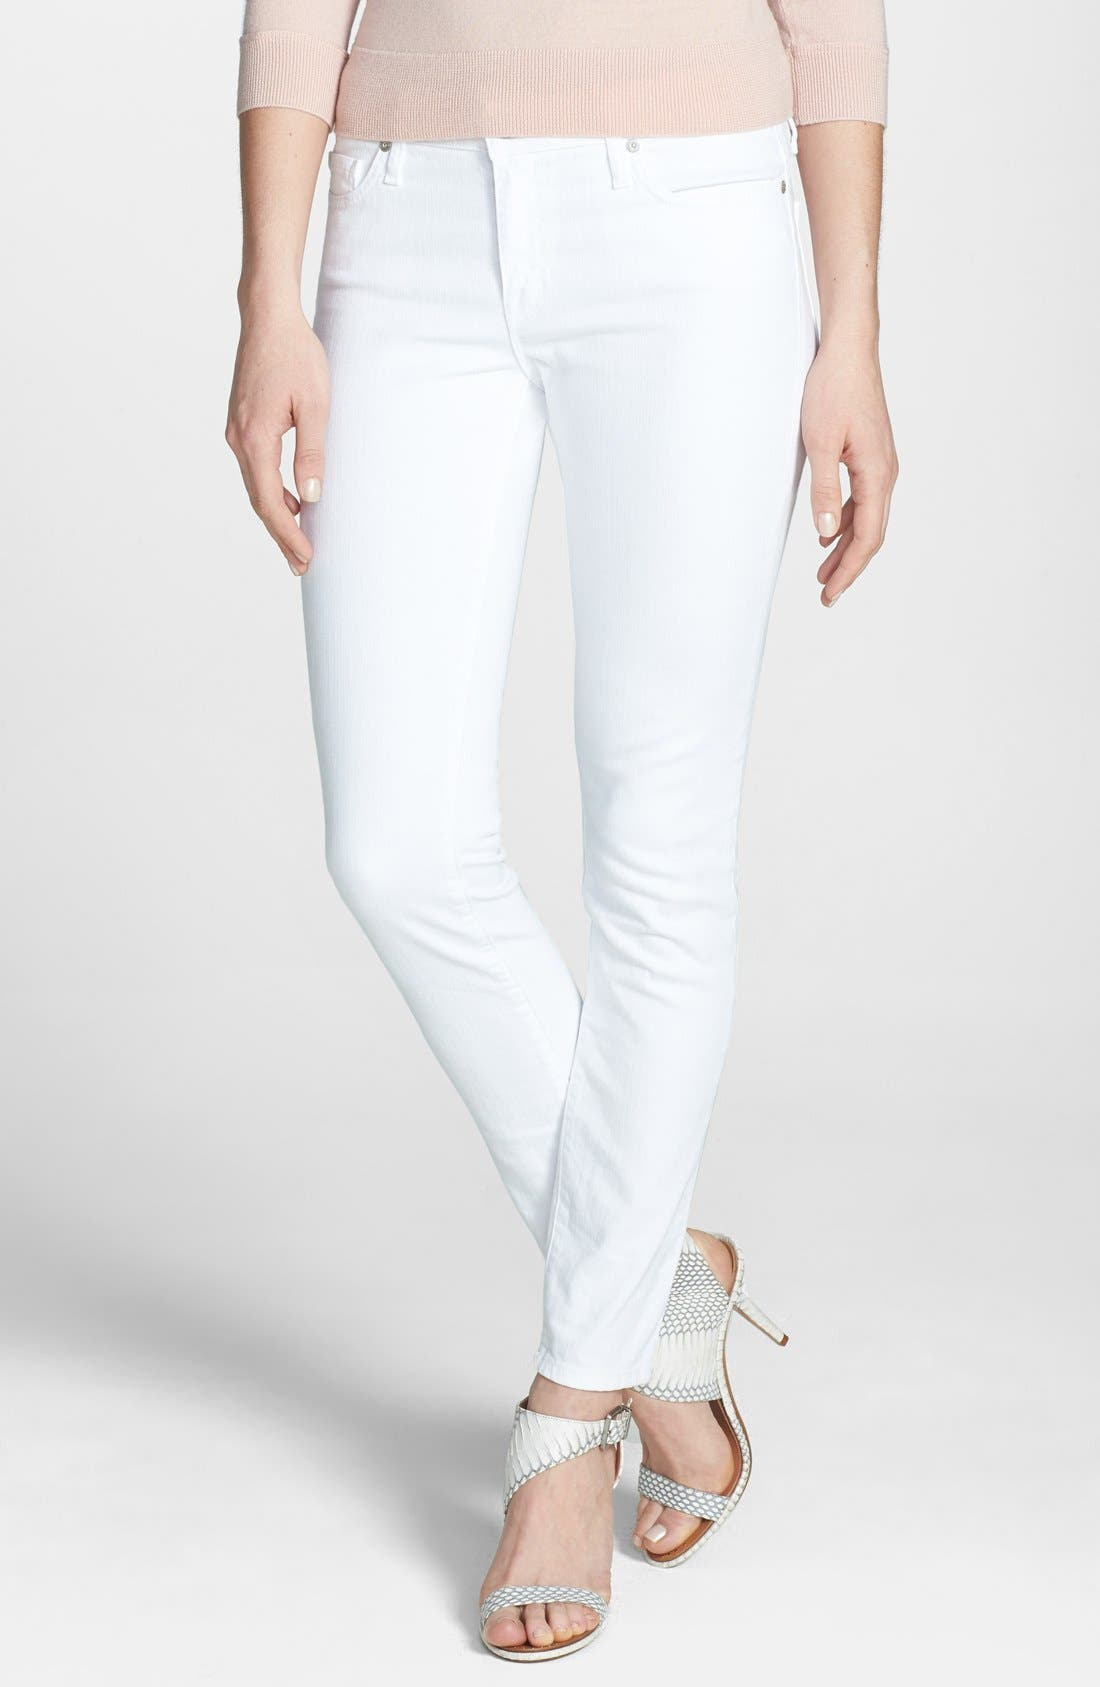 Alternate Image 1 Selected - Joie Mid Rise Stretch Skinny Jeans (Dandelion White)